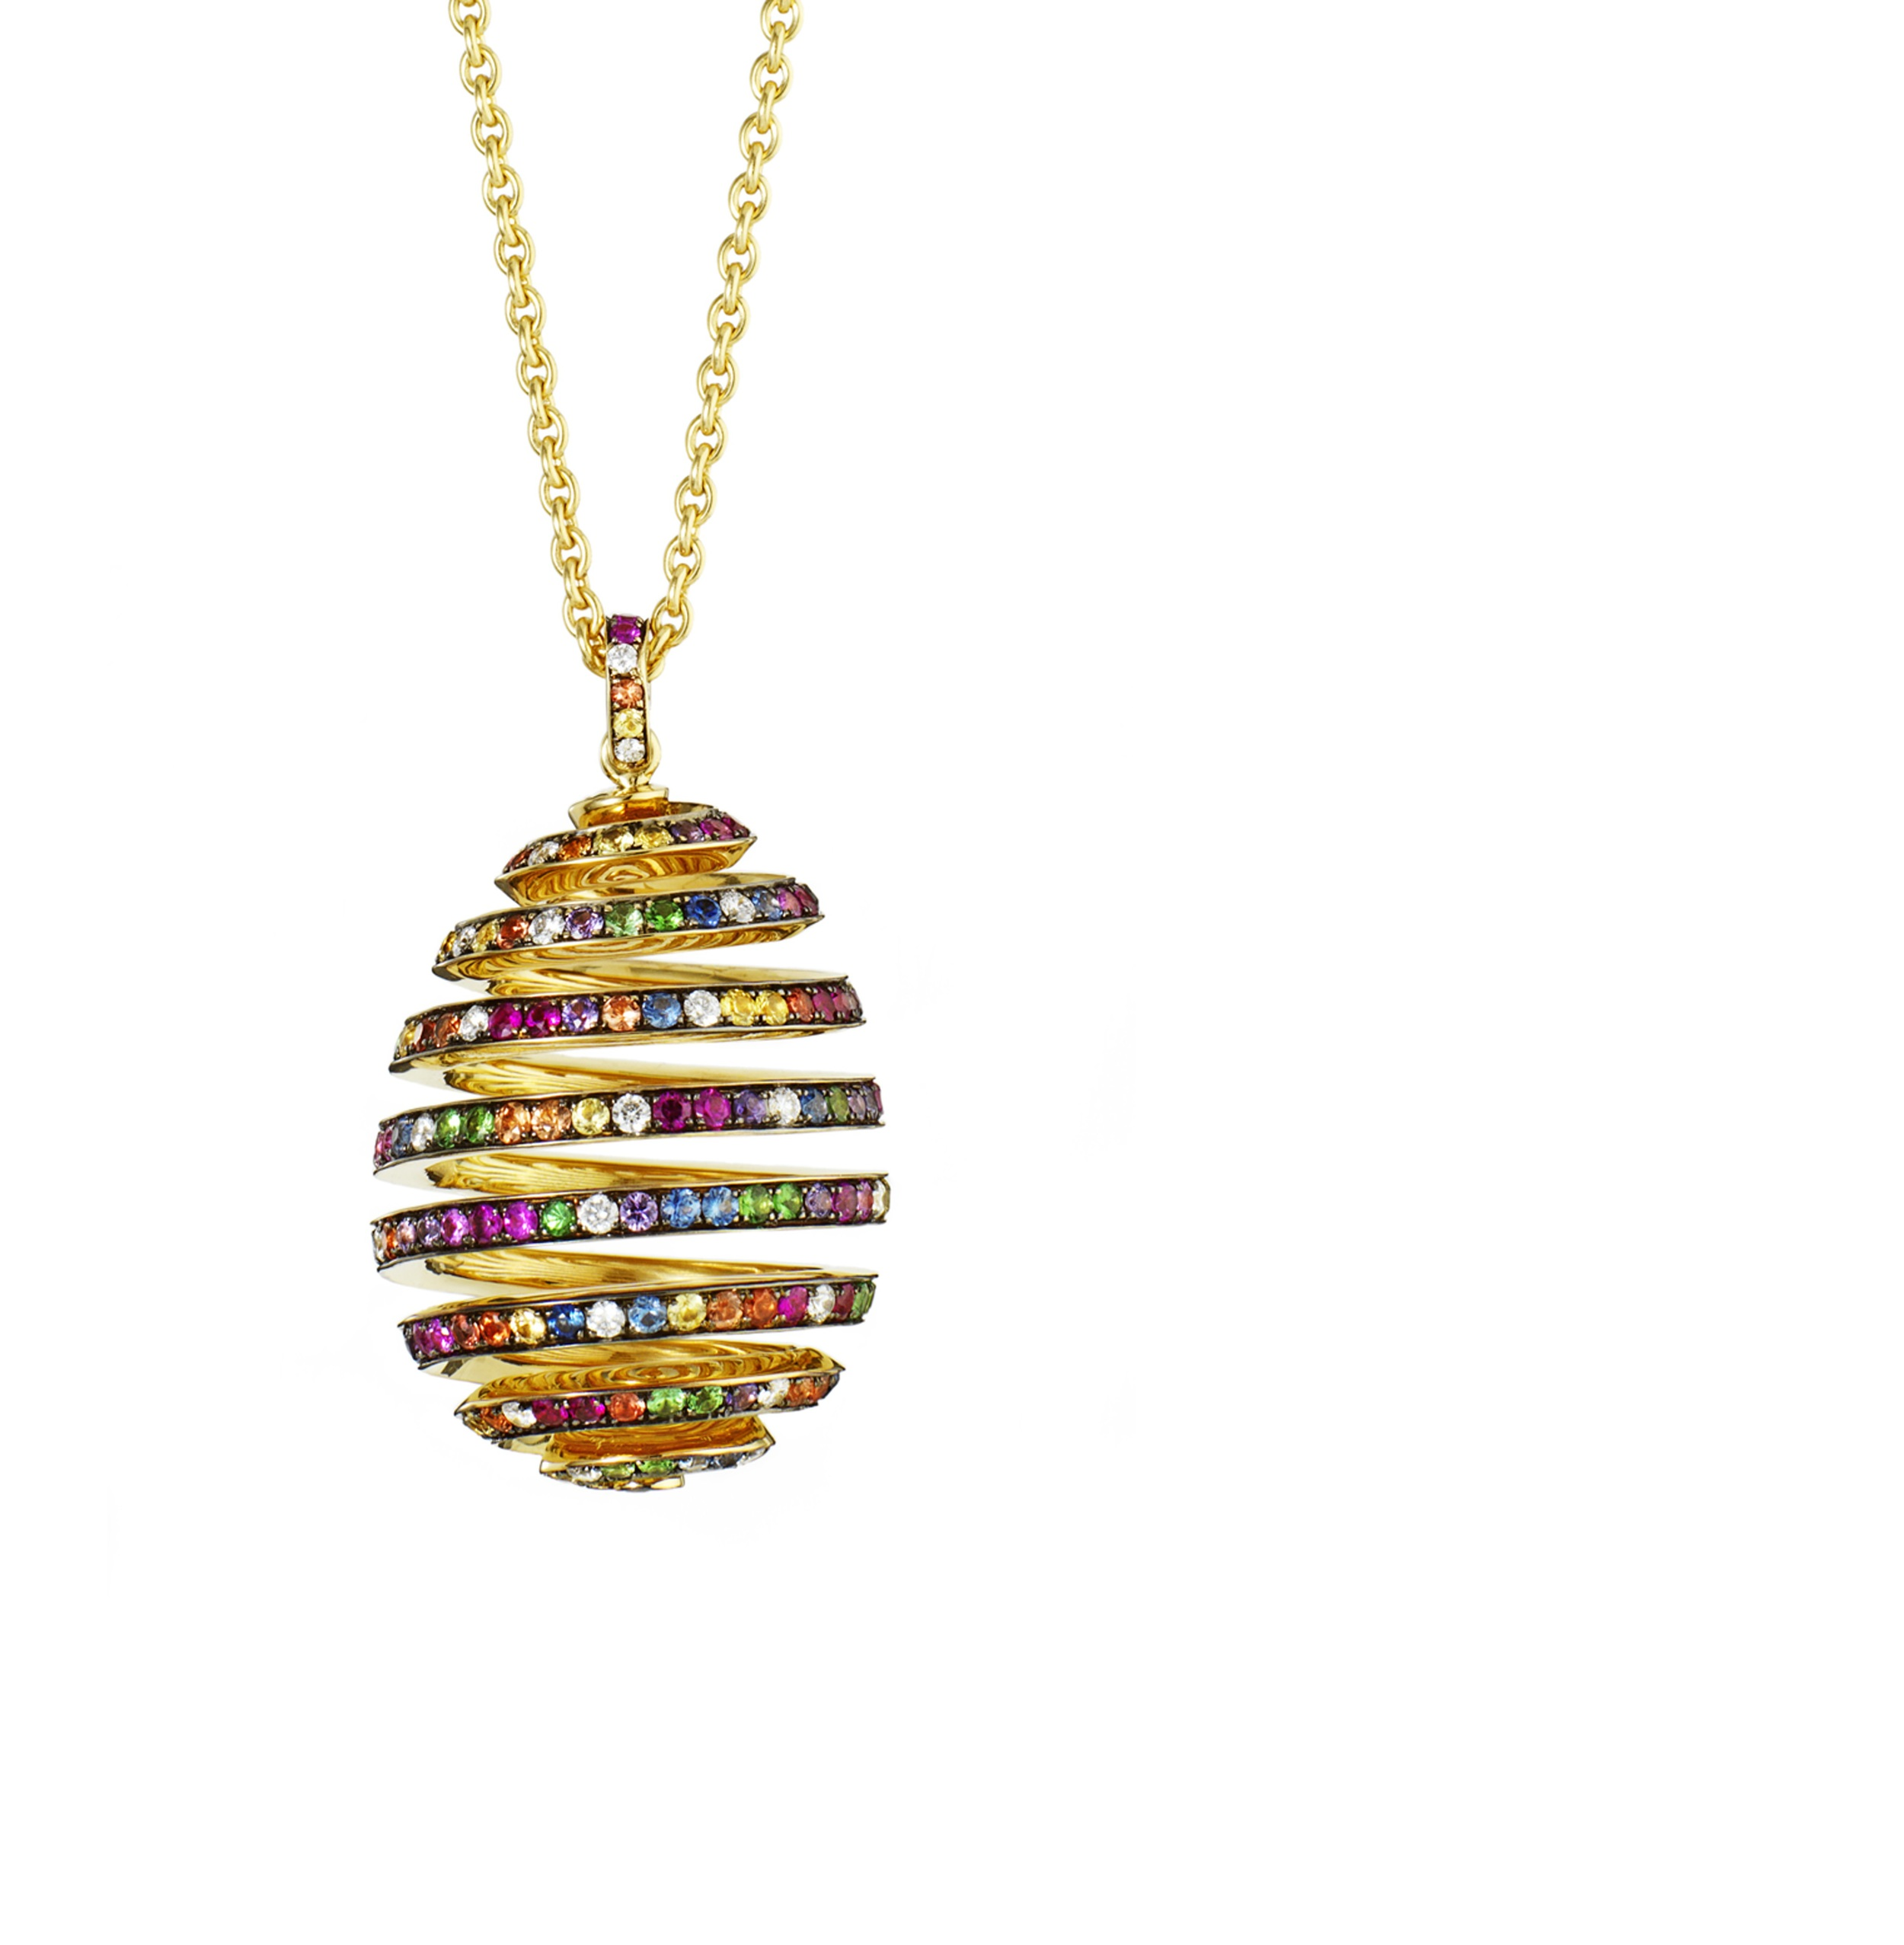 Faberge 'Oeuf Spirale' egg pendant with rubies and sapphires. Available in white gold and/or diamonds. From $16,240